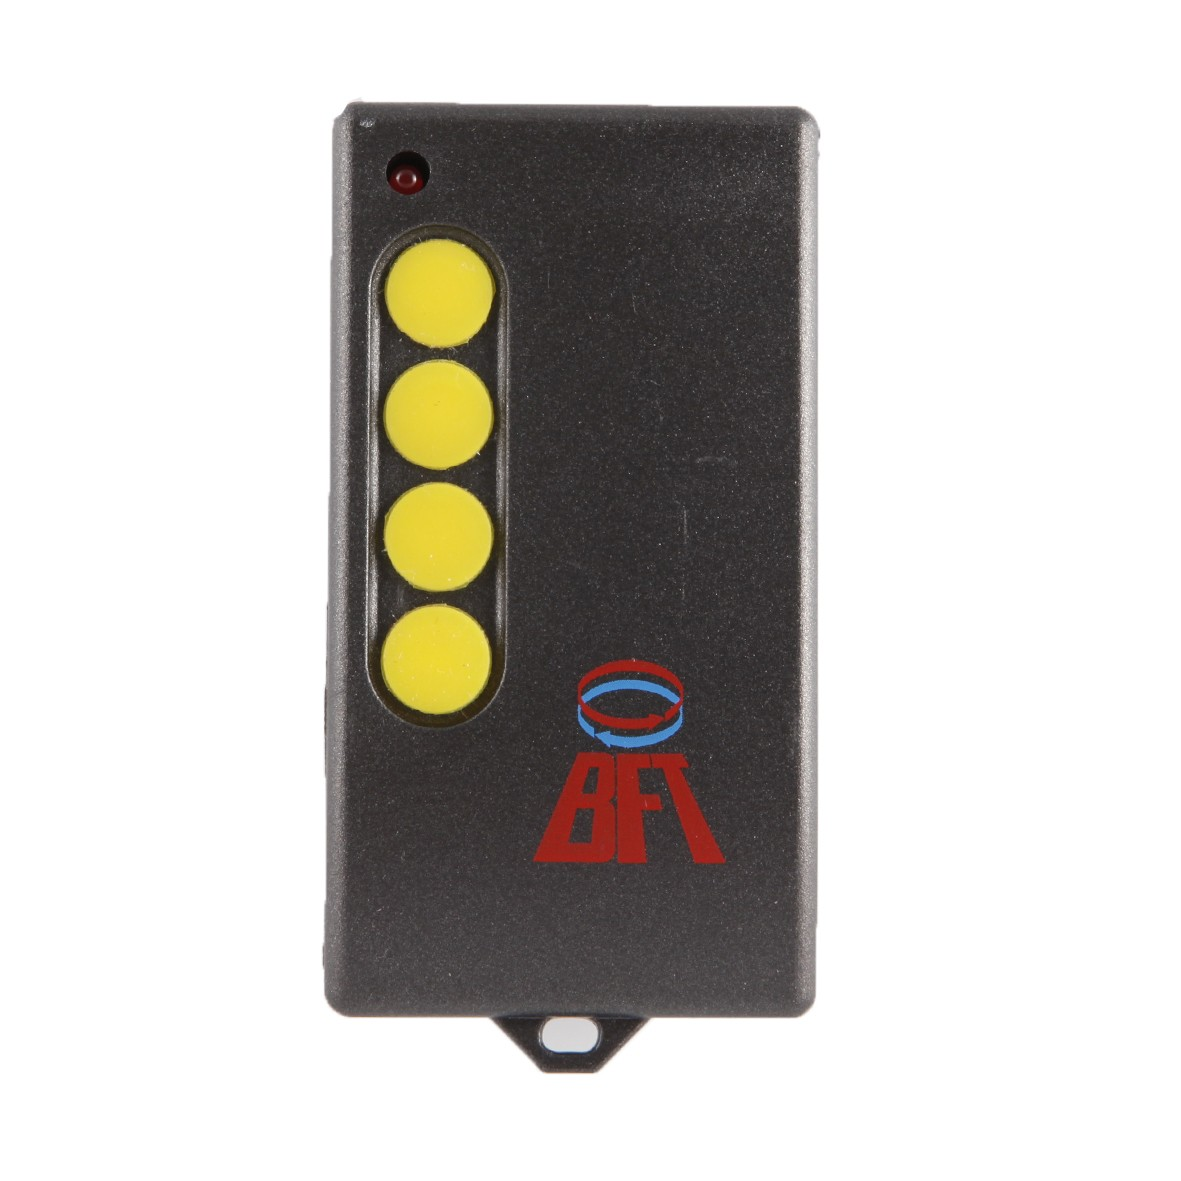 Bft Te04 Gateremotes Co Uk